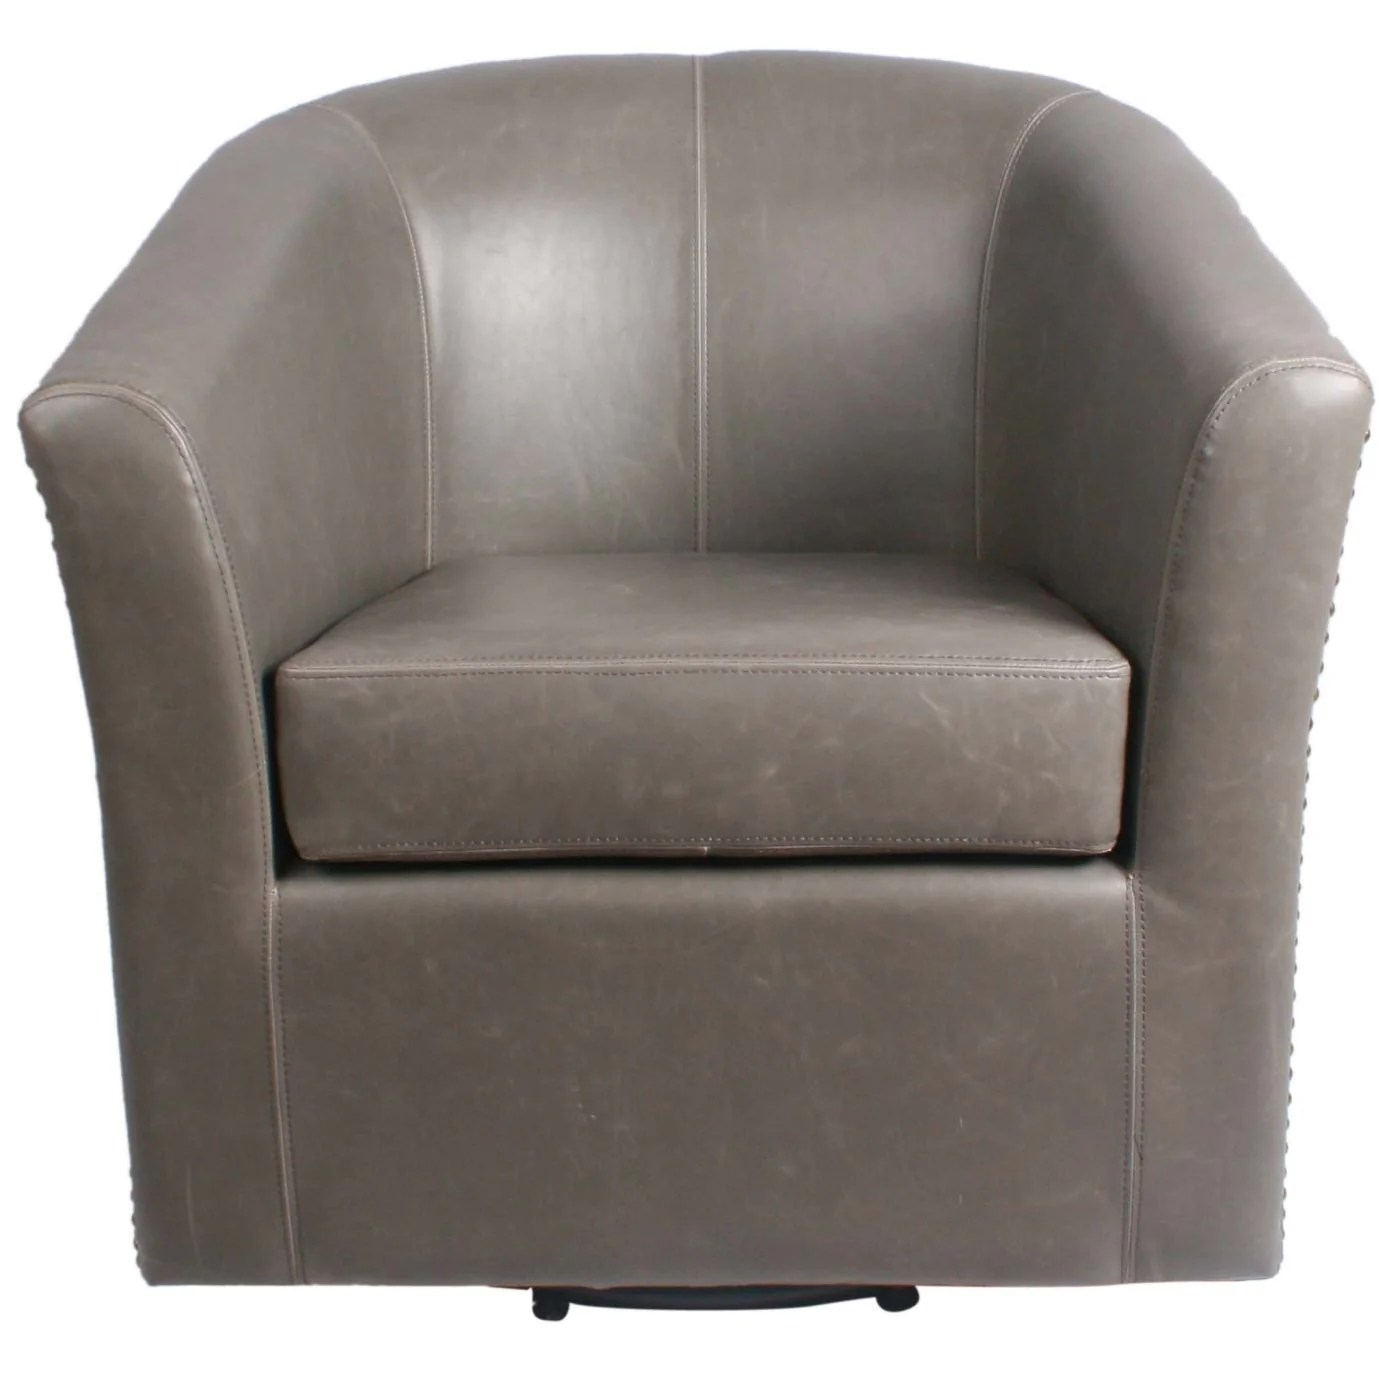 Vintage Swivel Chair Buy New Pacific Direct 1900046 V04 Ernest Bonded Leather Swivel Chair Vintage Gray At Contemporary Furniture Warehouse